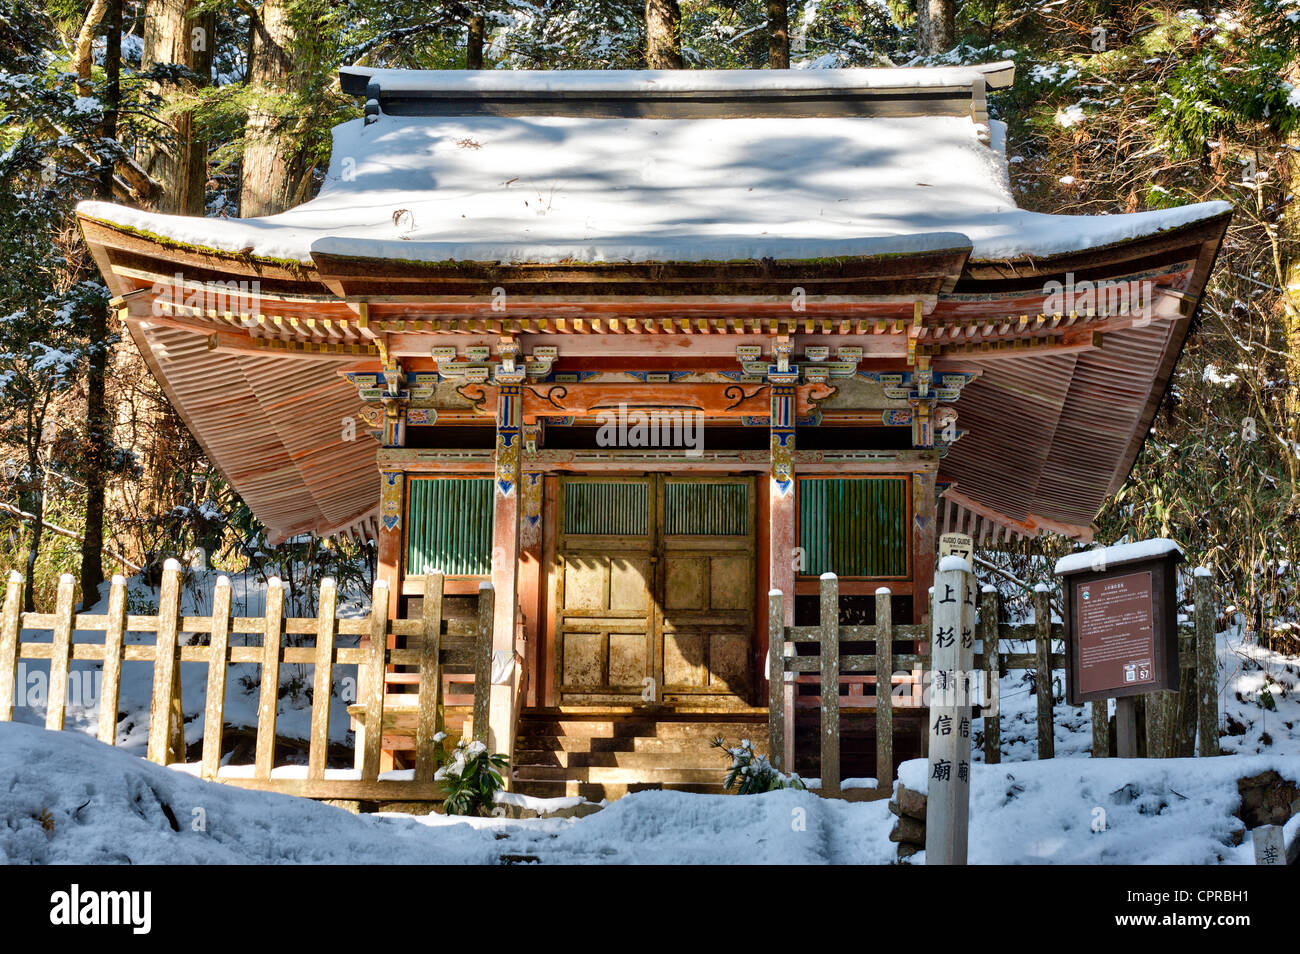 Japan, Koyasan, Okunoin cemetery. Snow-covered wooden painted Mausoleum hall marking the grave of Uesugi Kenshin. - Stock Image